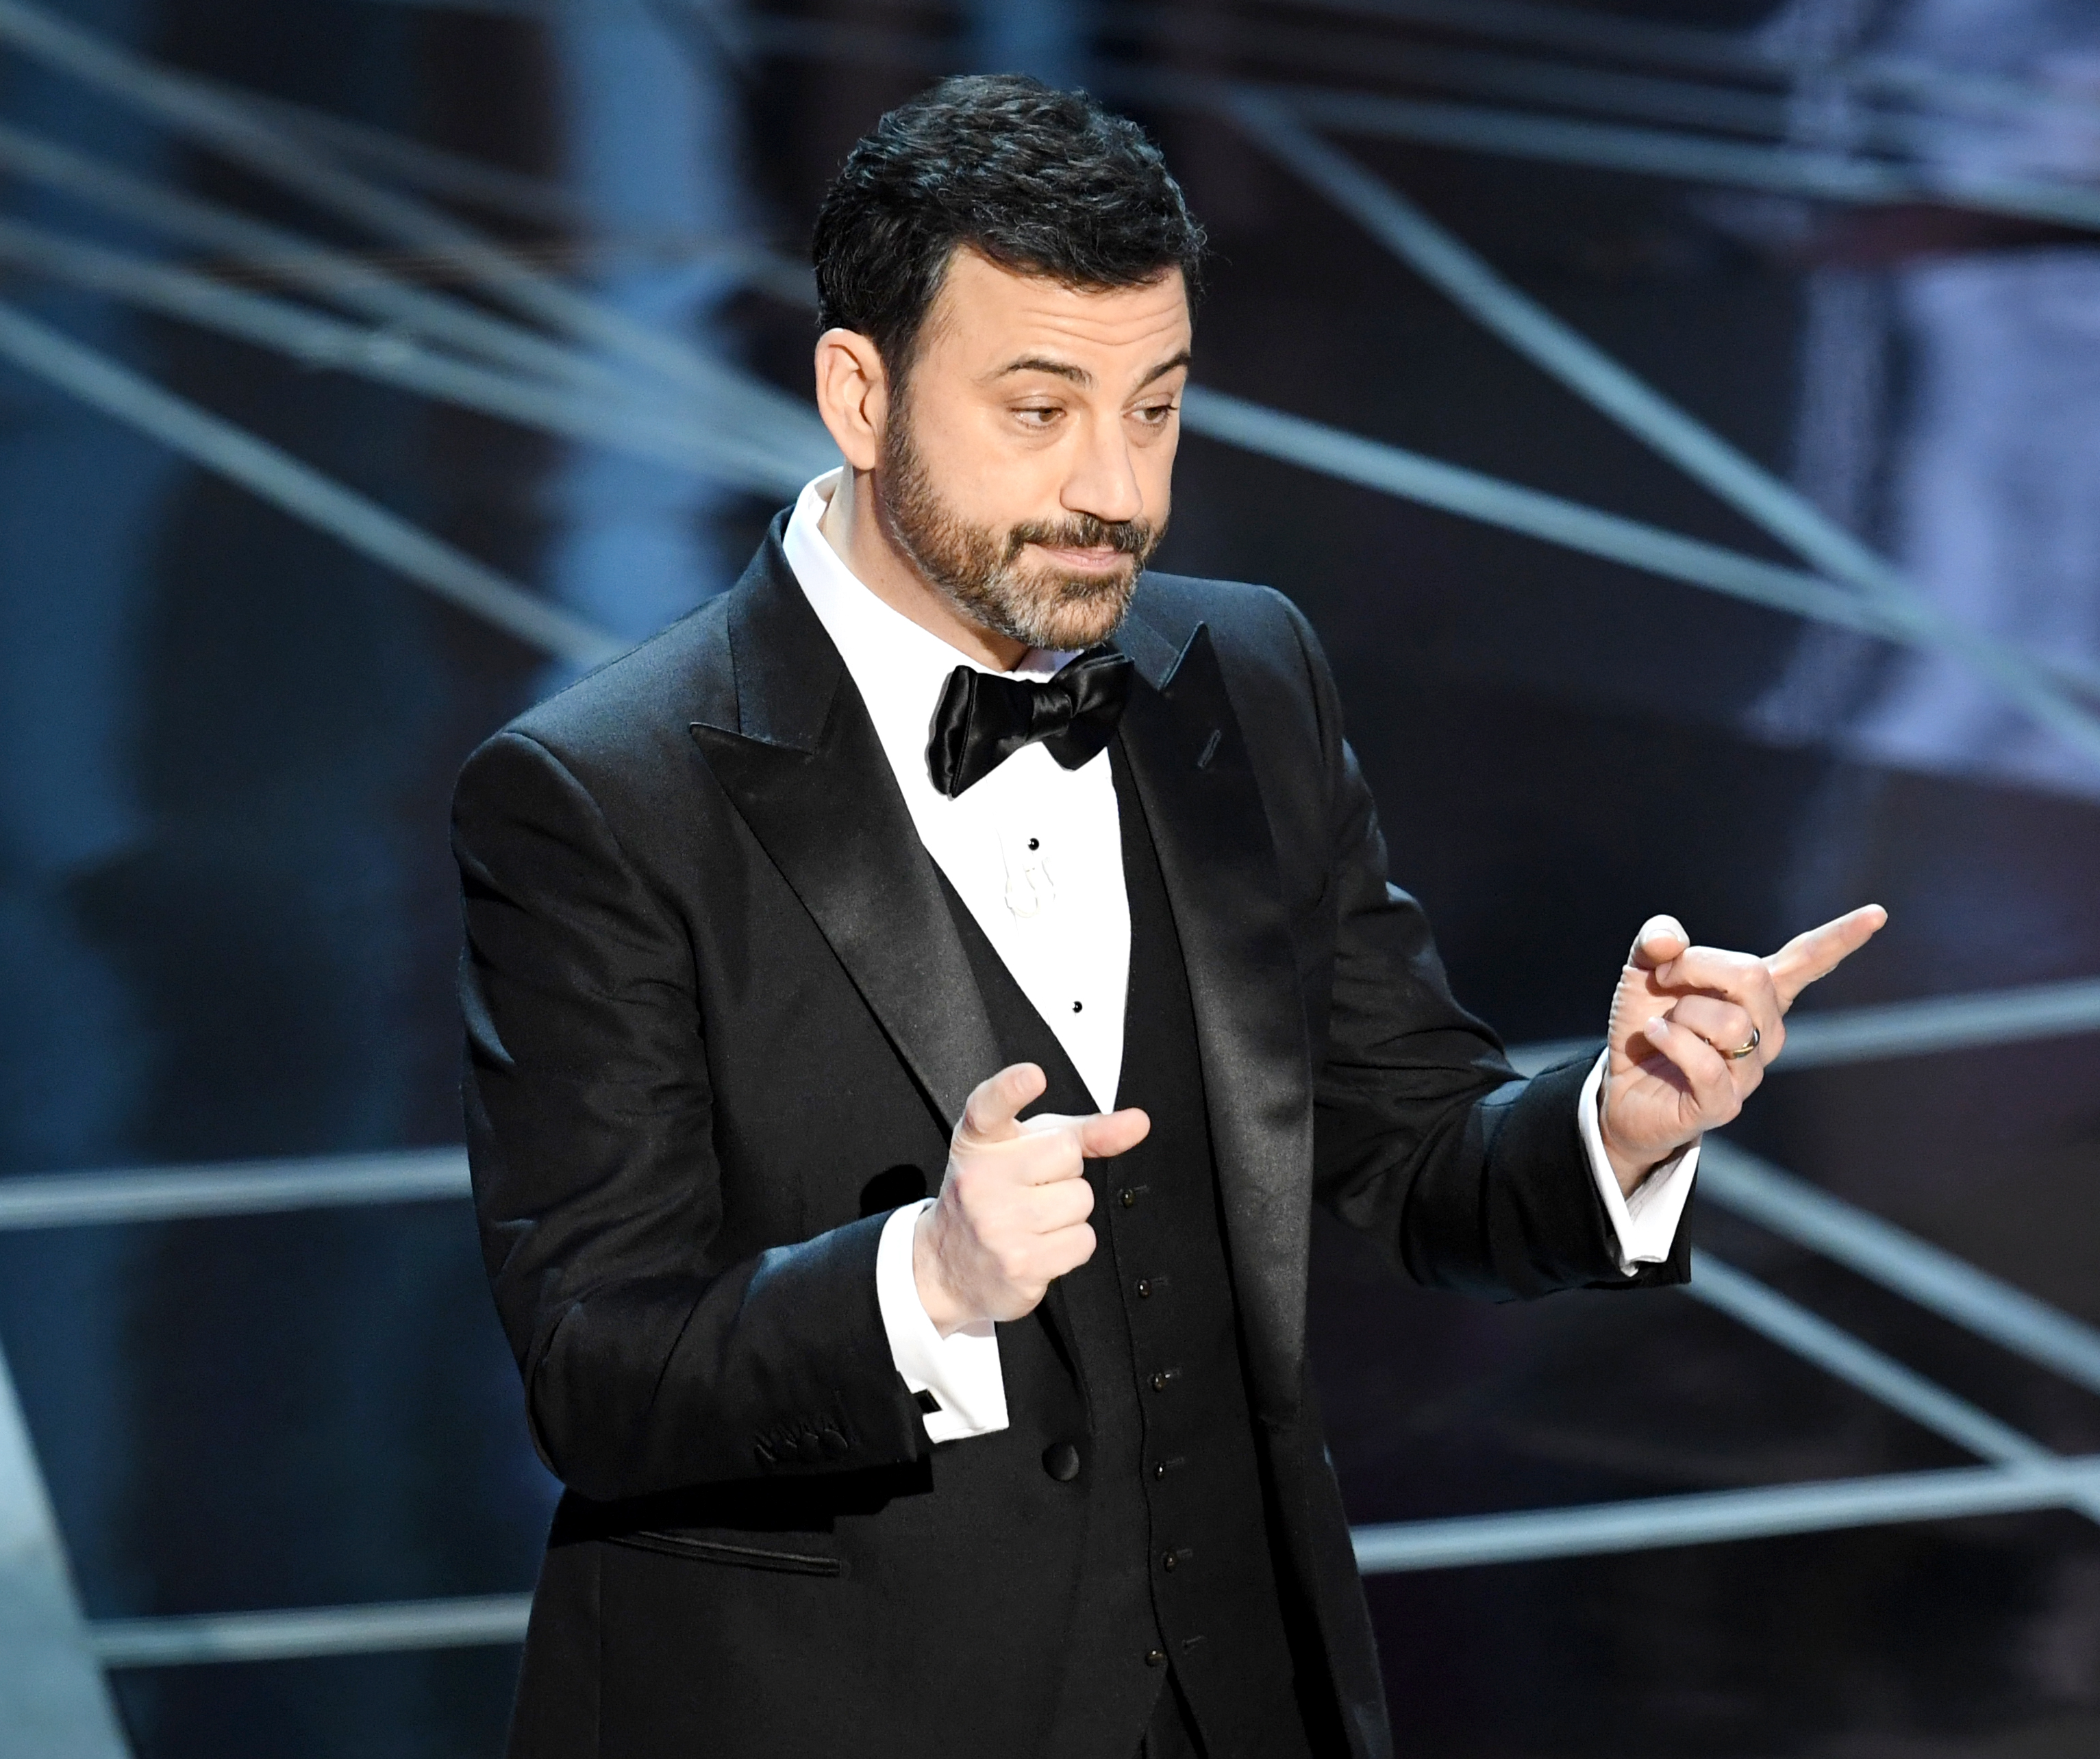 Host Jimmy Kimmel speaks onstage during the 89th Annual Academy Awards at Hollywood & Highland Center on February 26, 2017 in Hollywood, California.